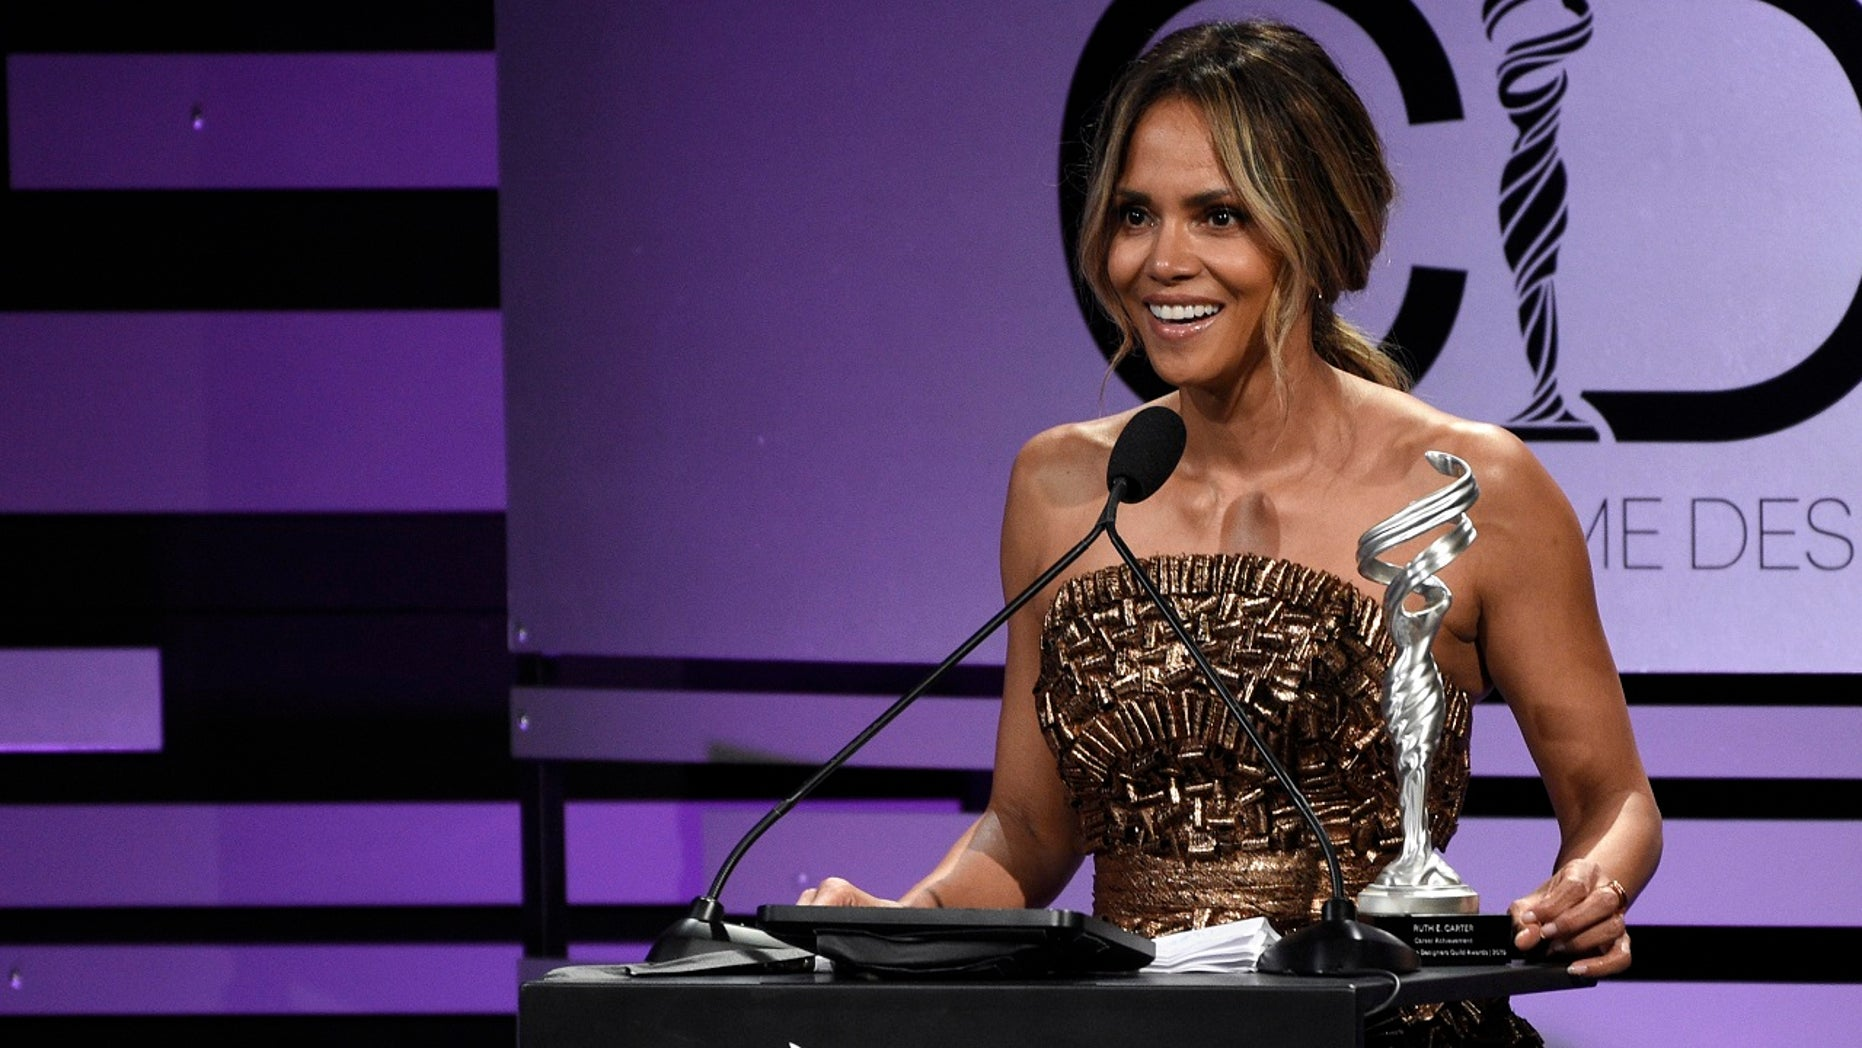 Halle Berry presents the career achievement award at the 21st annual Costume Designers Guild Awards at The Beverly Hilton Hotel on Tuesday, Feb. 19, 2019, in Beverly Hills, Calif.